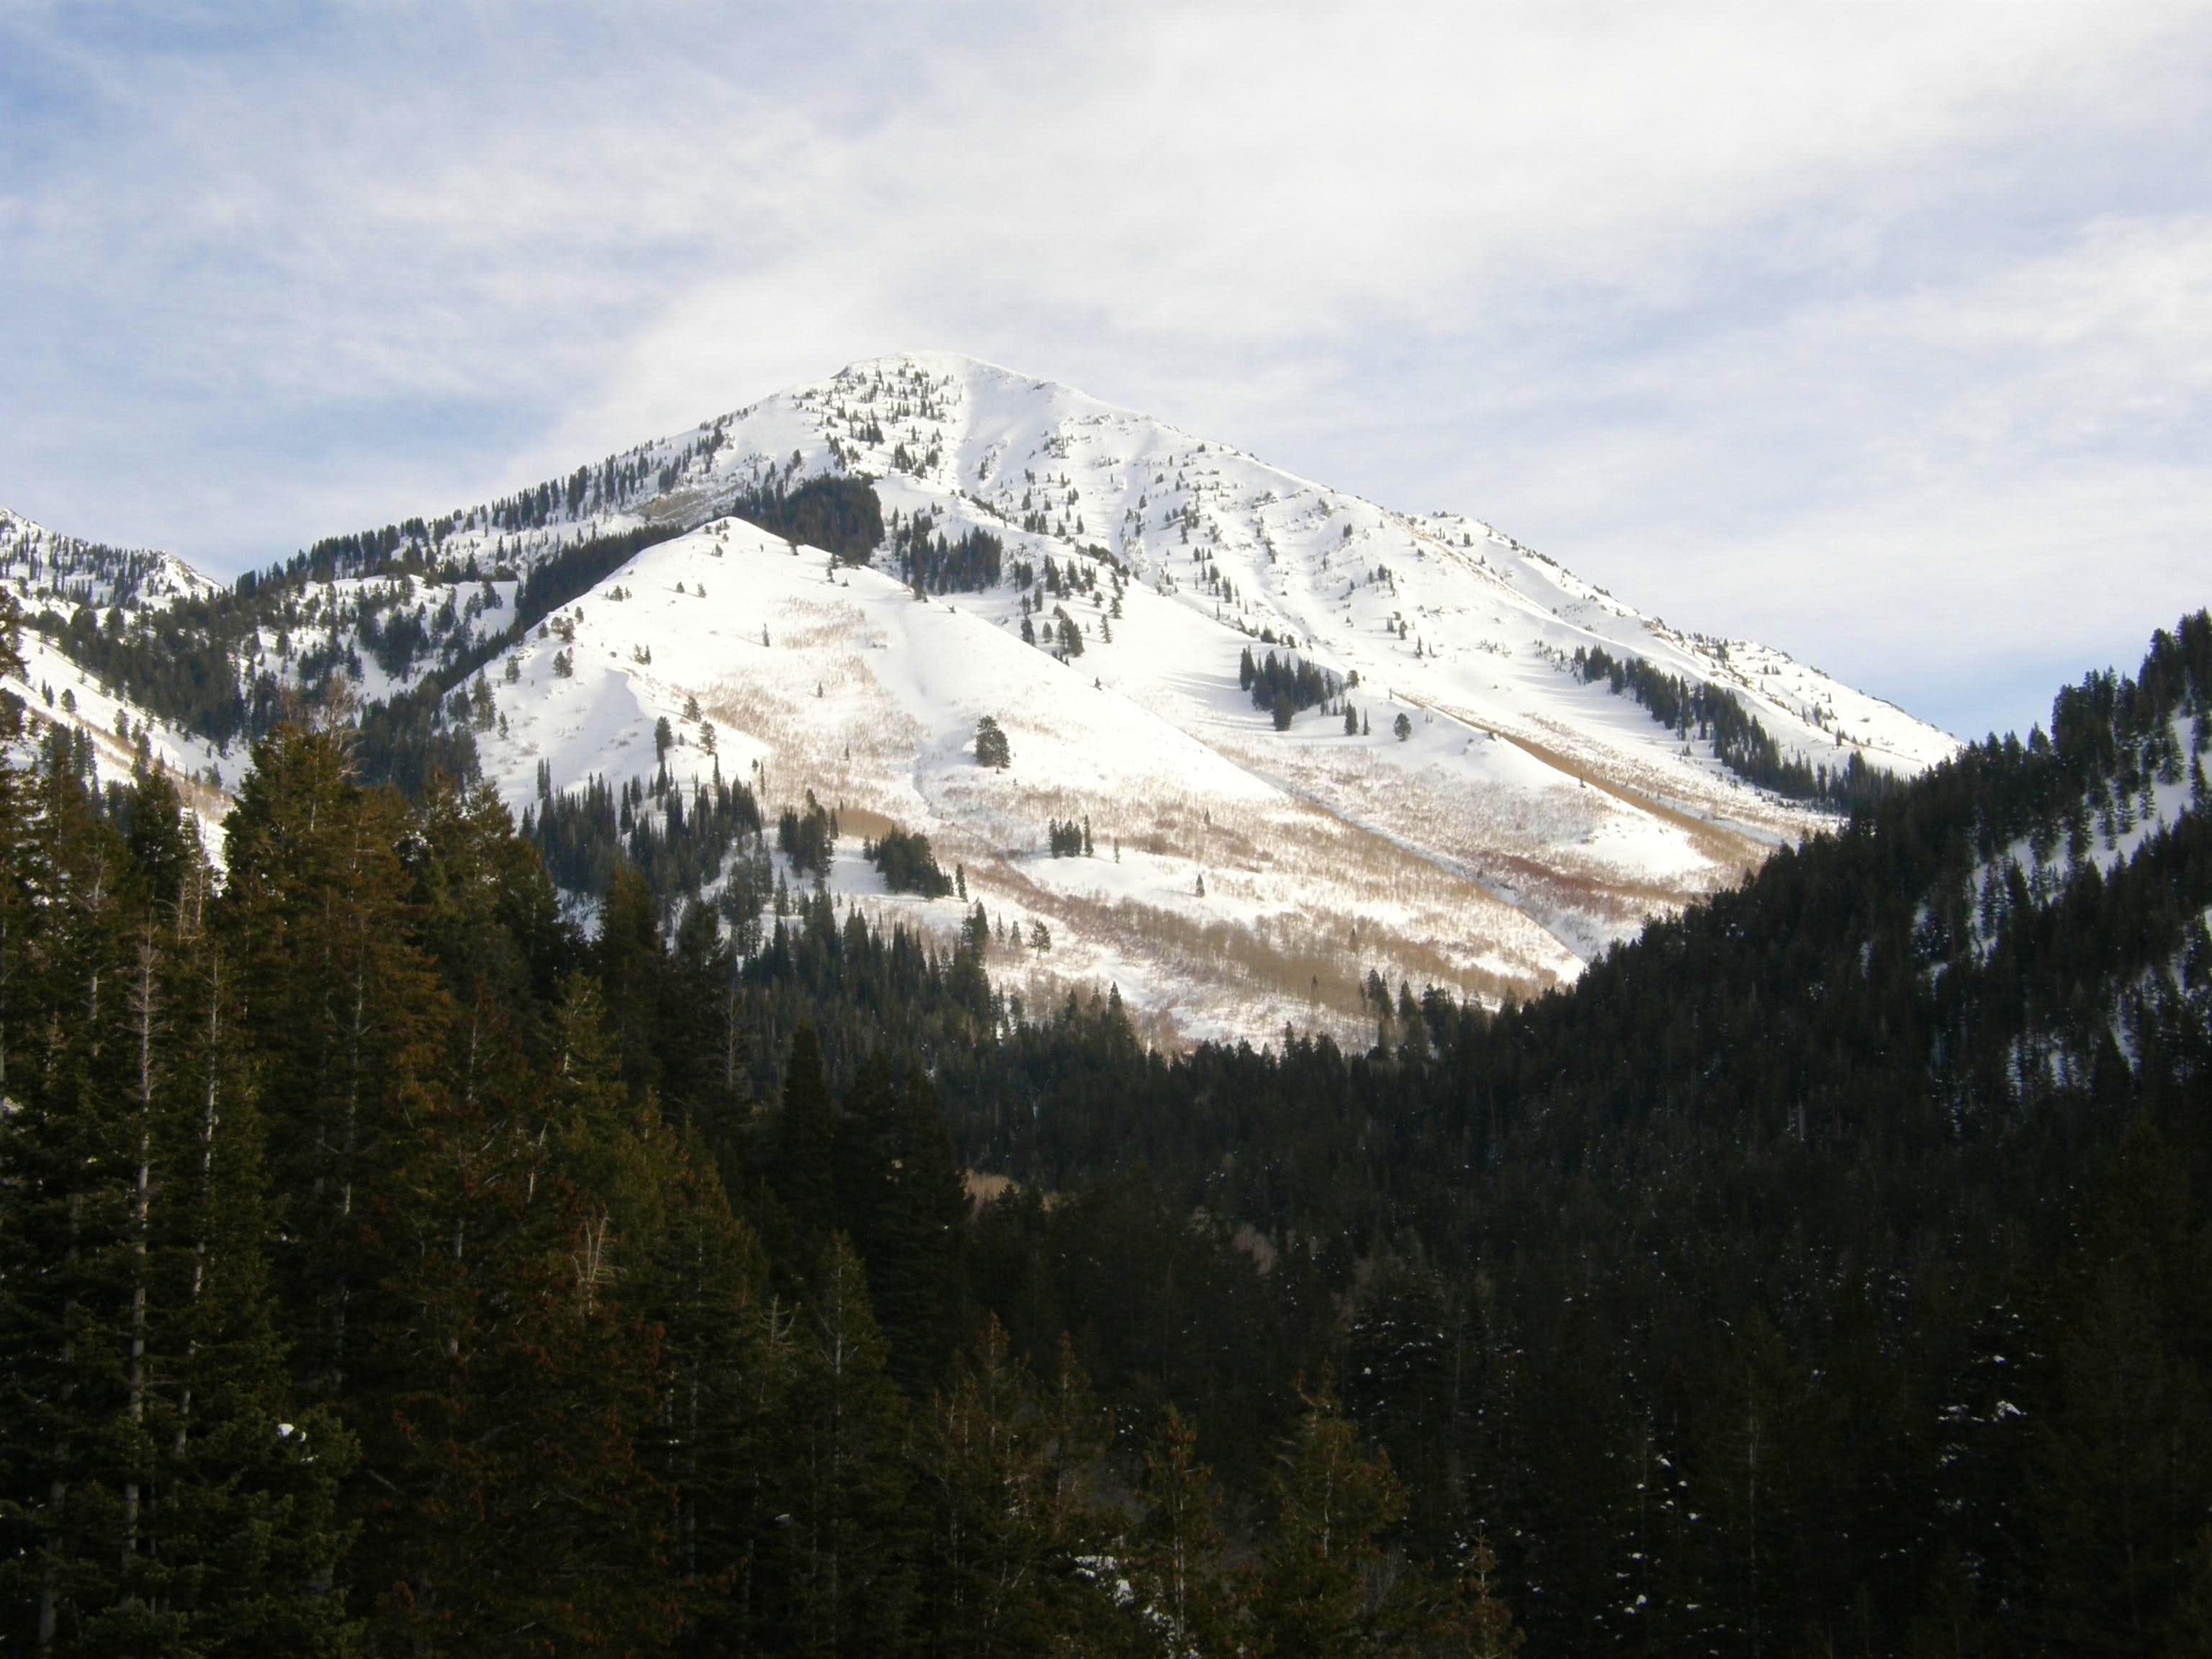 Provo Peak via Rock Canyon - The Third Time\'s the Charm